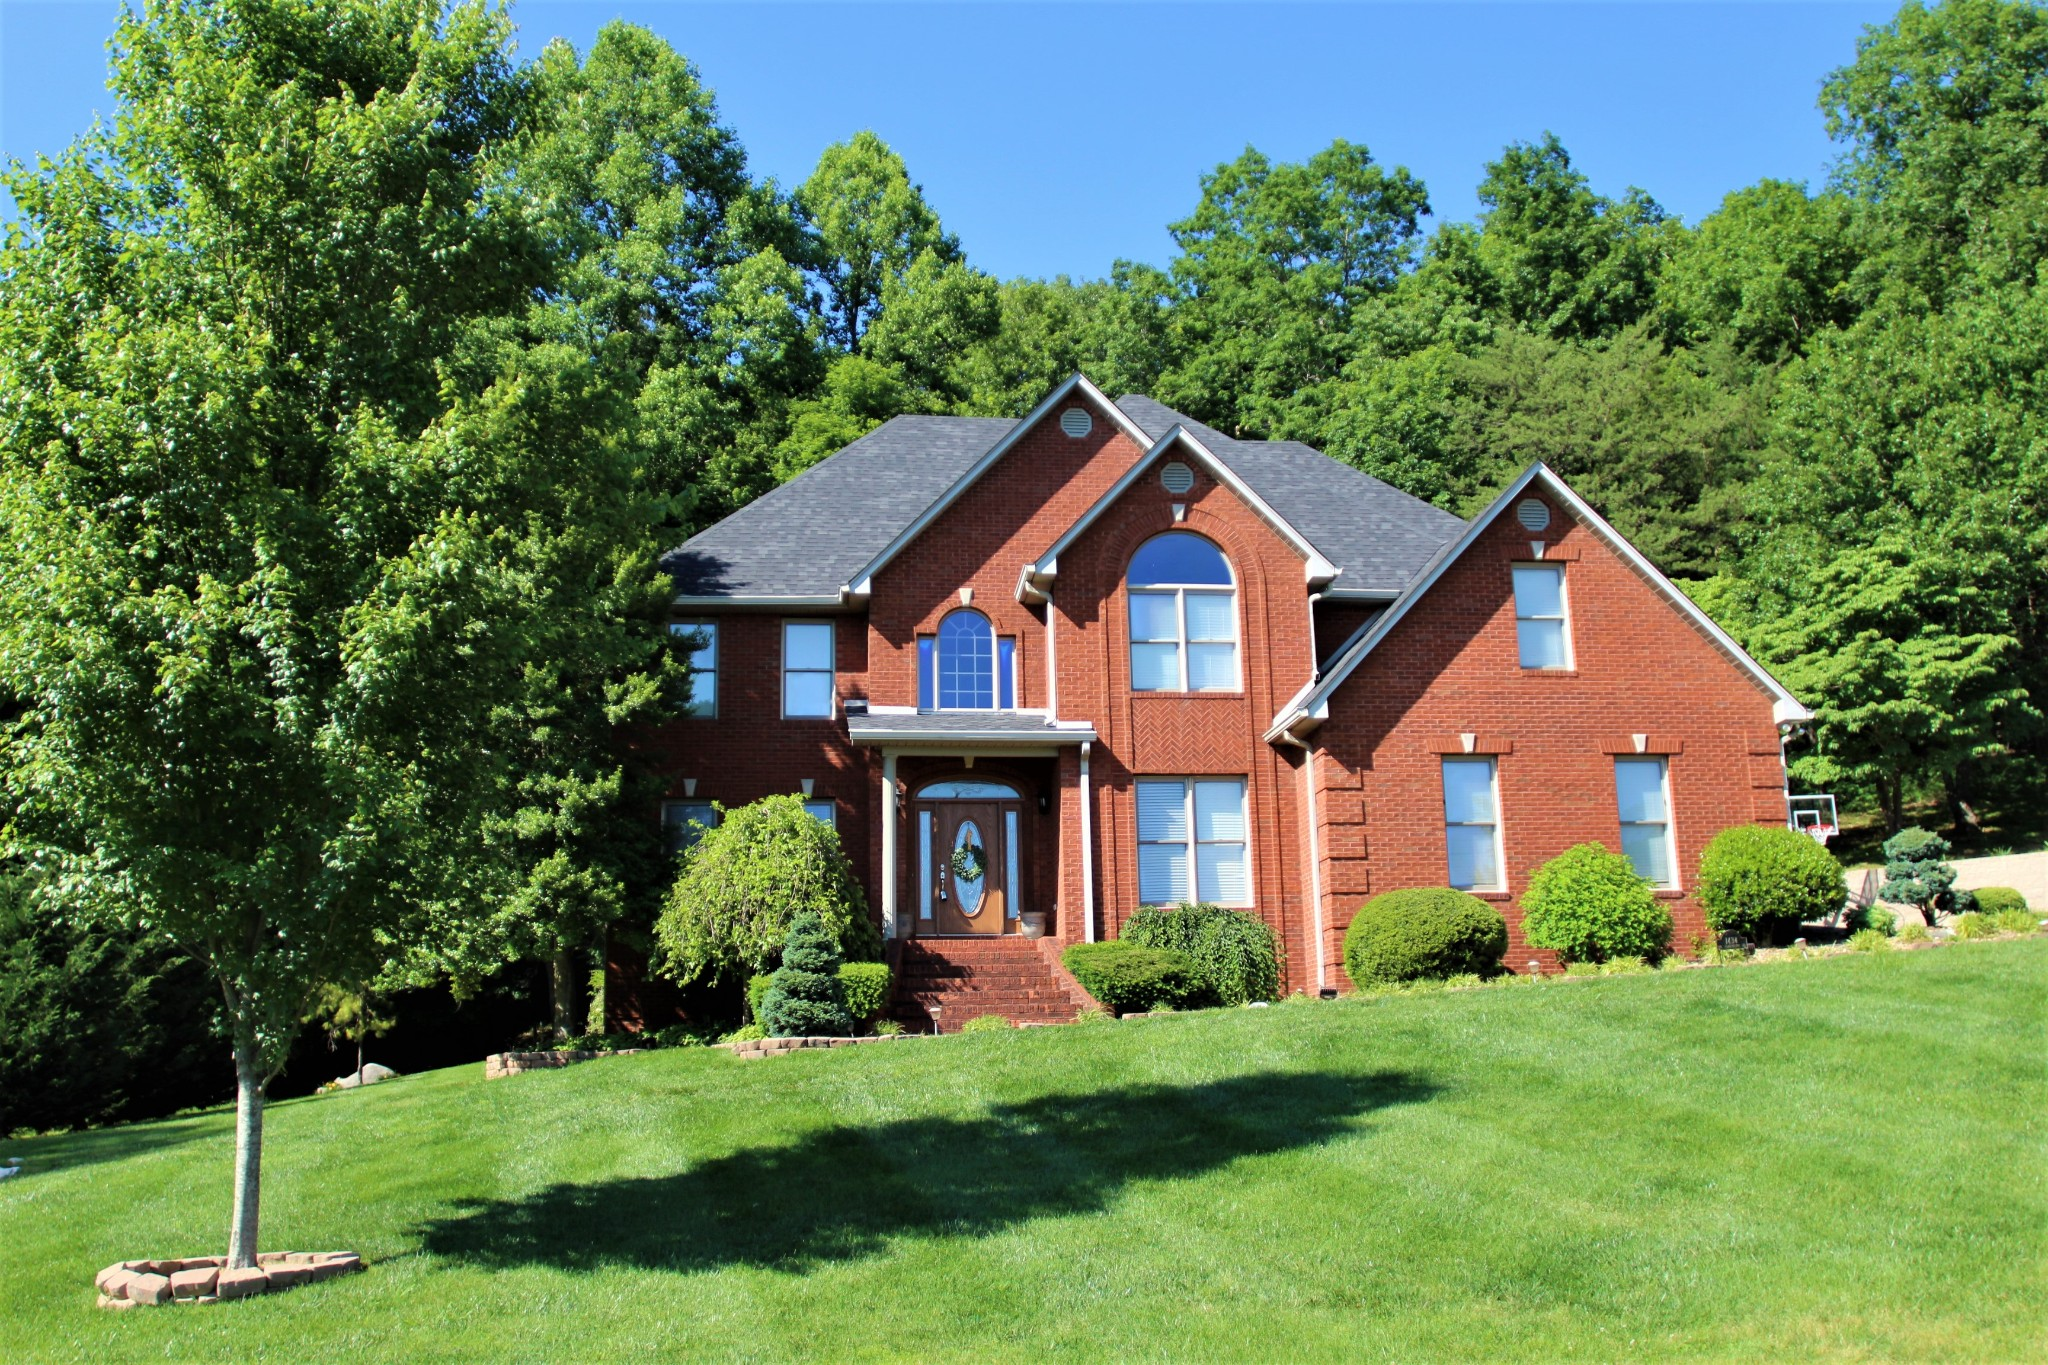 1434 N Plantation Dr Property Photo - Cookeville, TN real estate listing